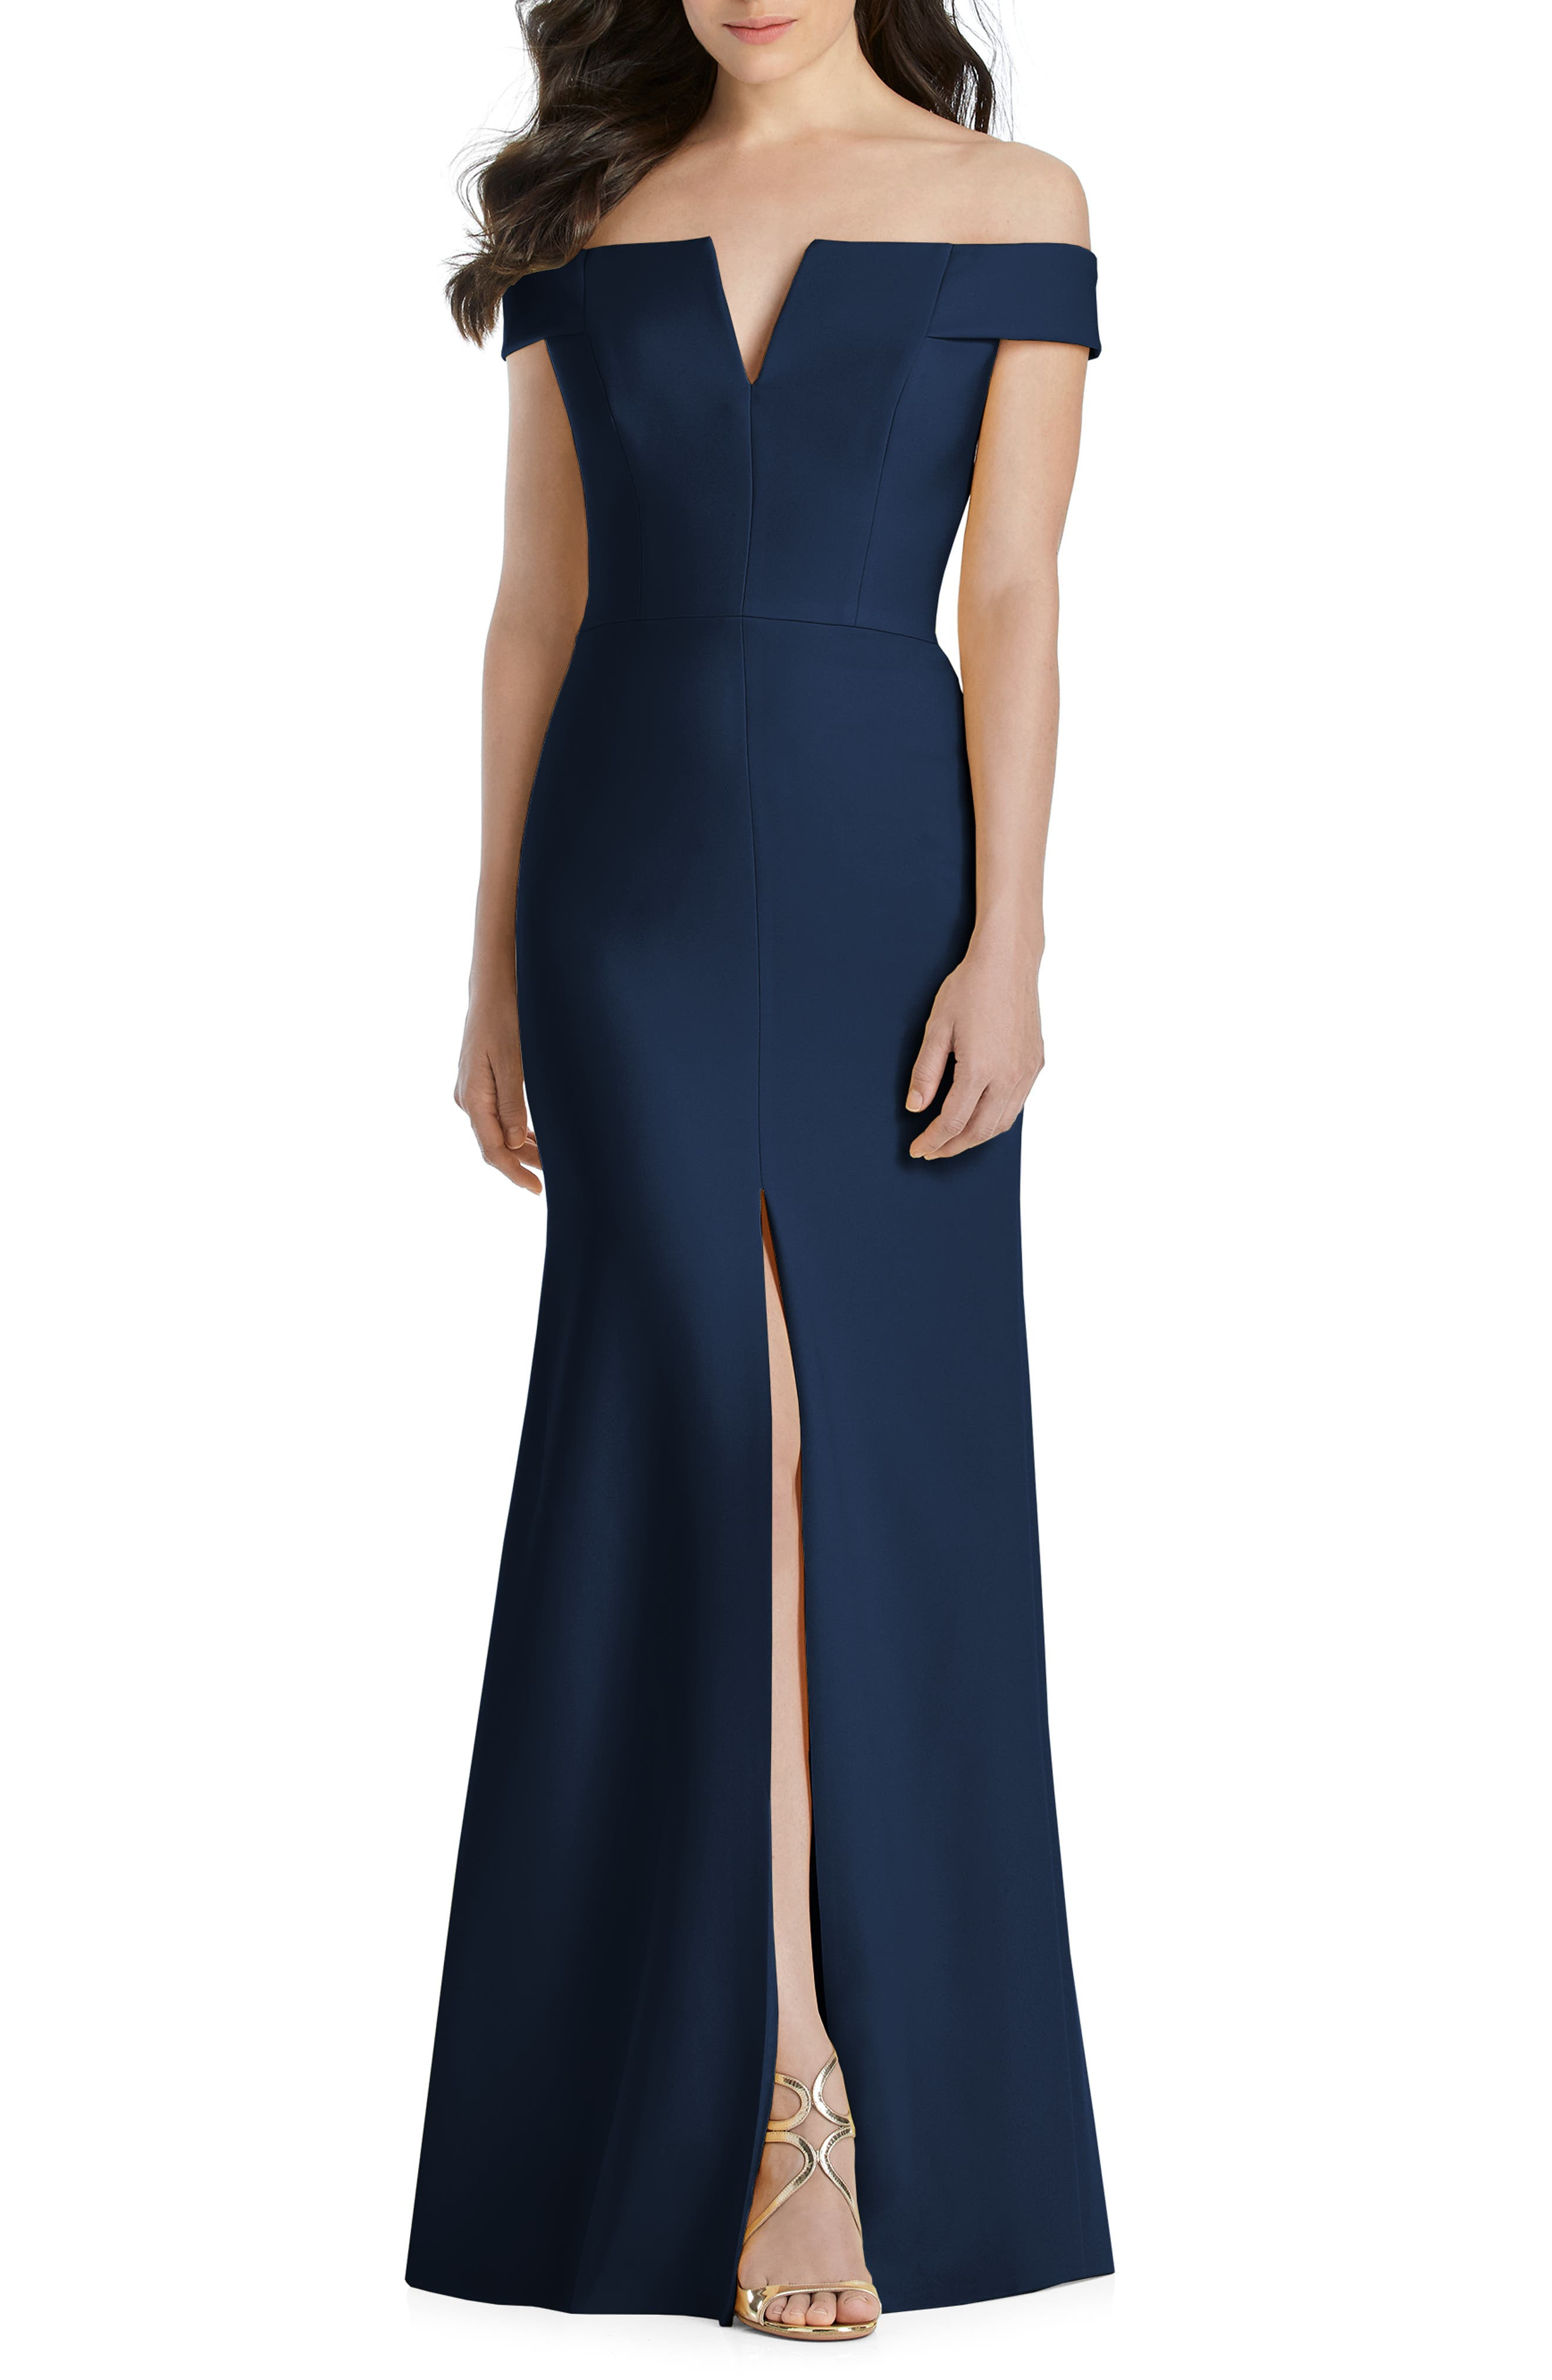 DESSY COLLECTION, Notched Off the Shoulder Crepe Gown, Main thumbnail 1, color, MIDNIGHT